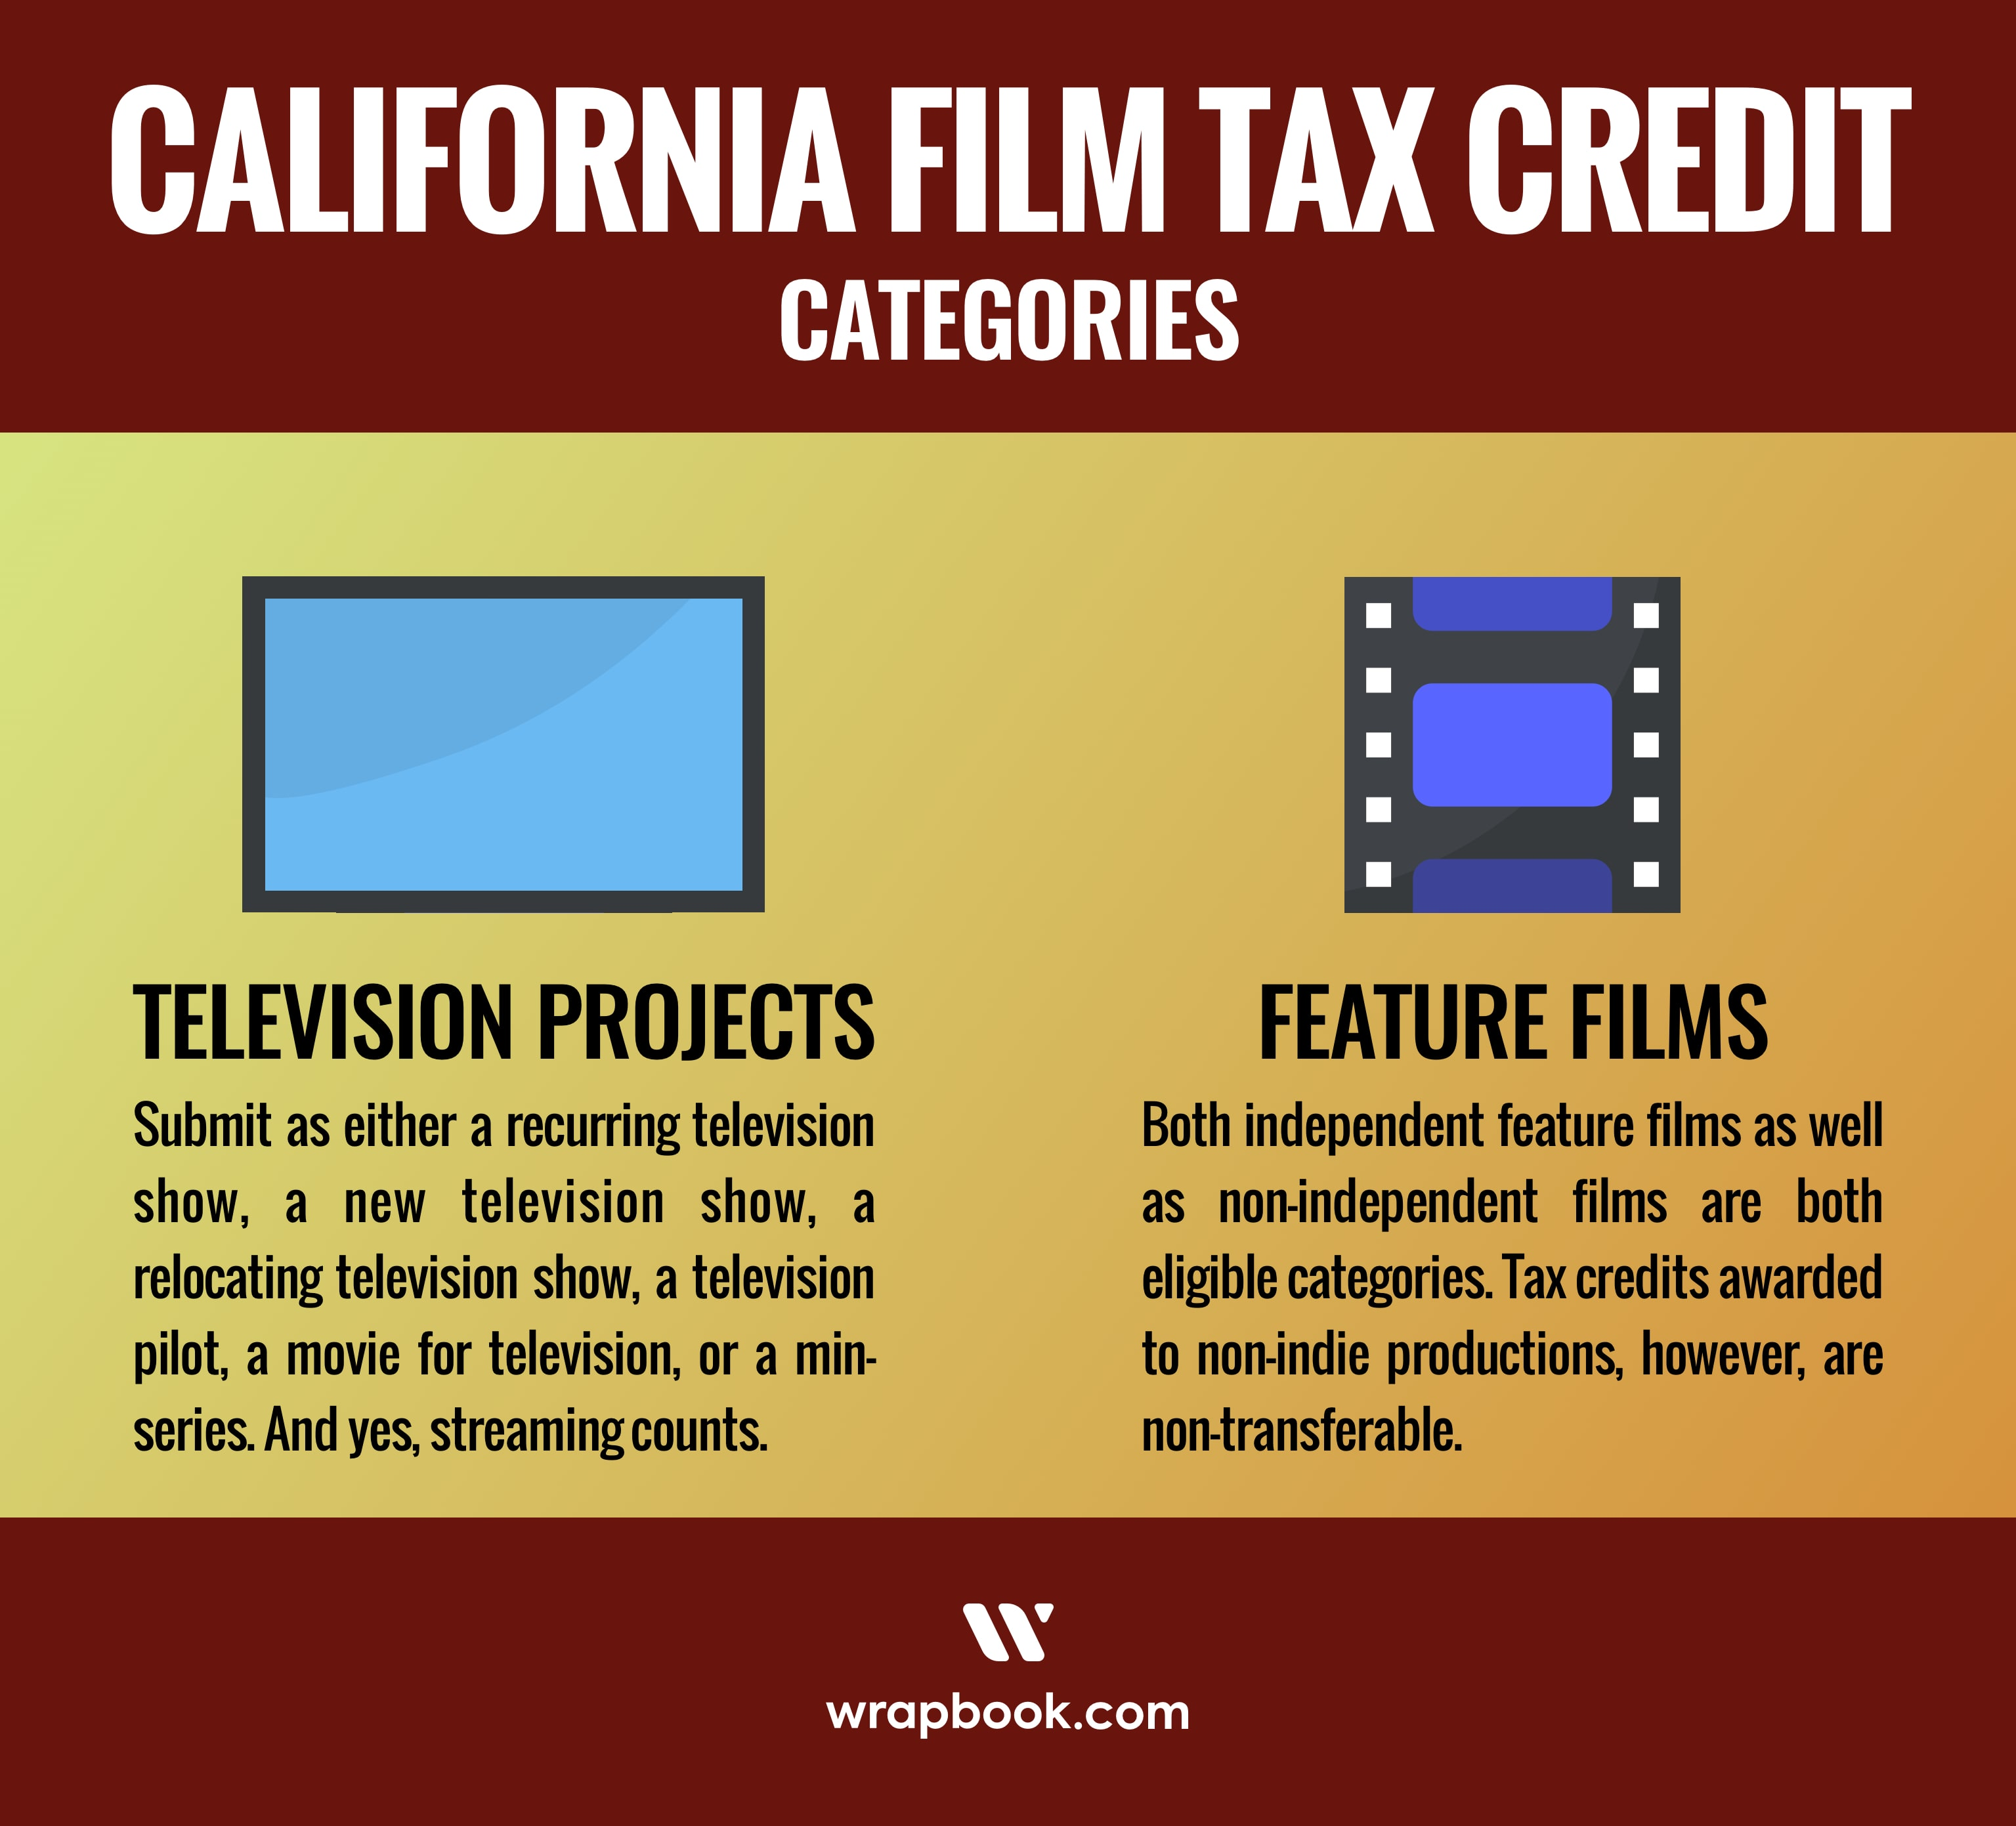 The categories are: TV Projects, Relocating TV Series, Indie Feature Films, and Non-Indie Feature Films.